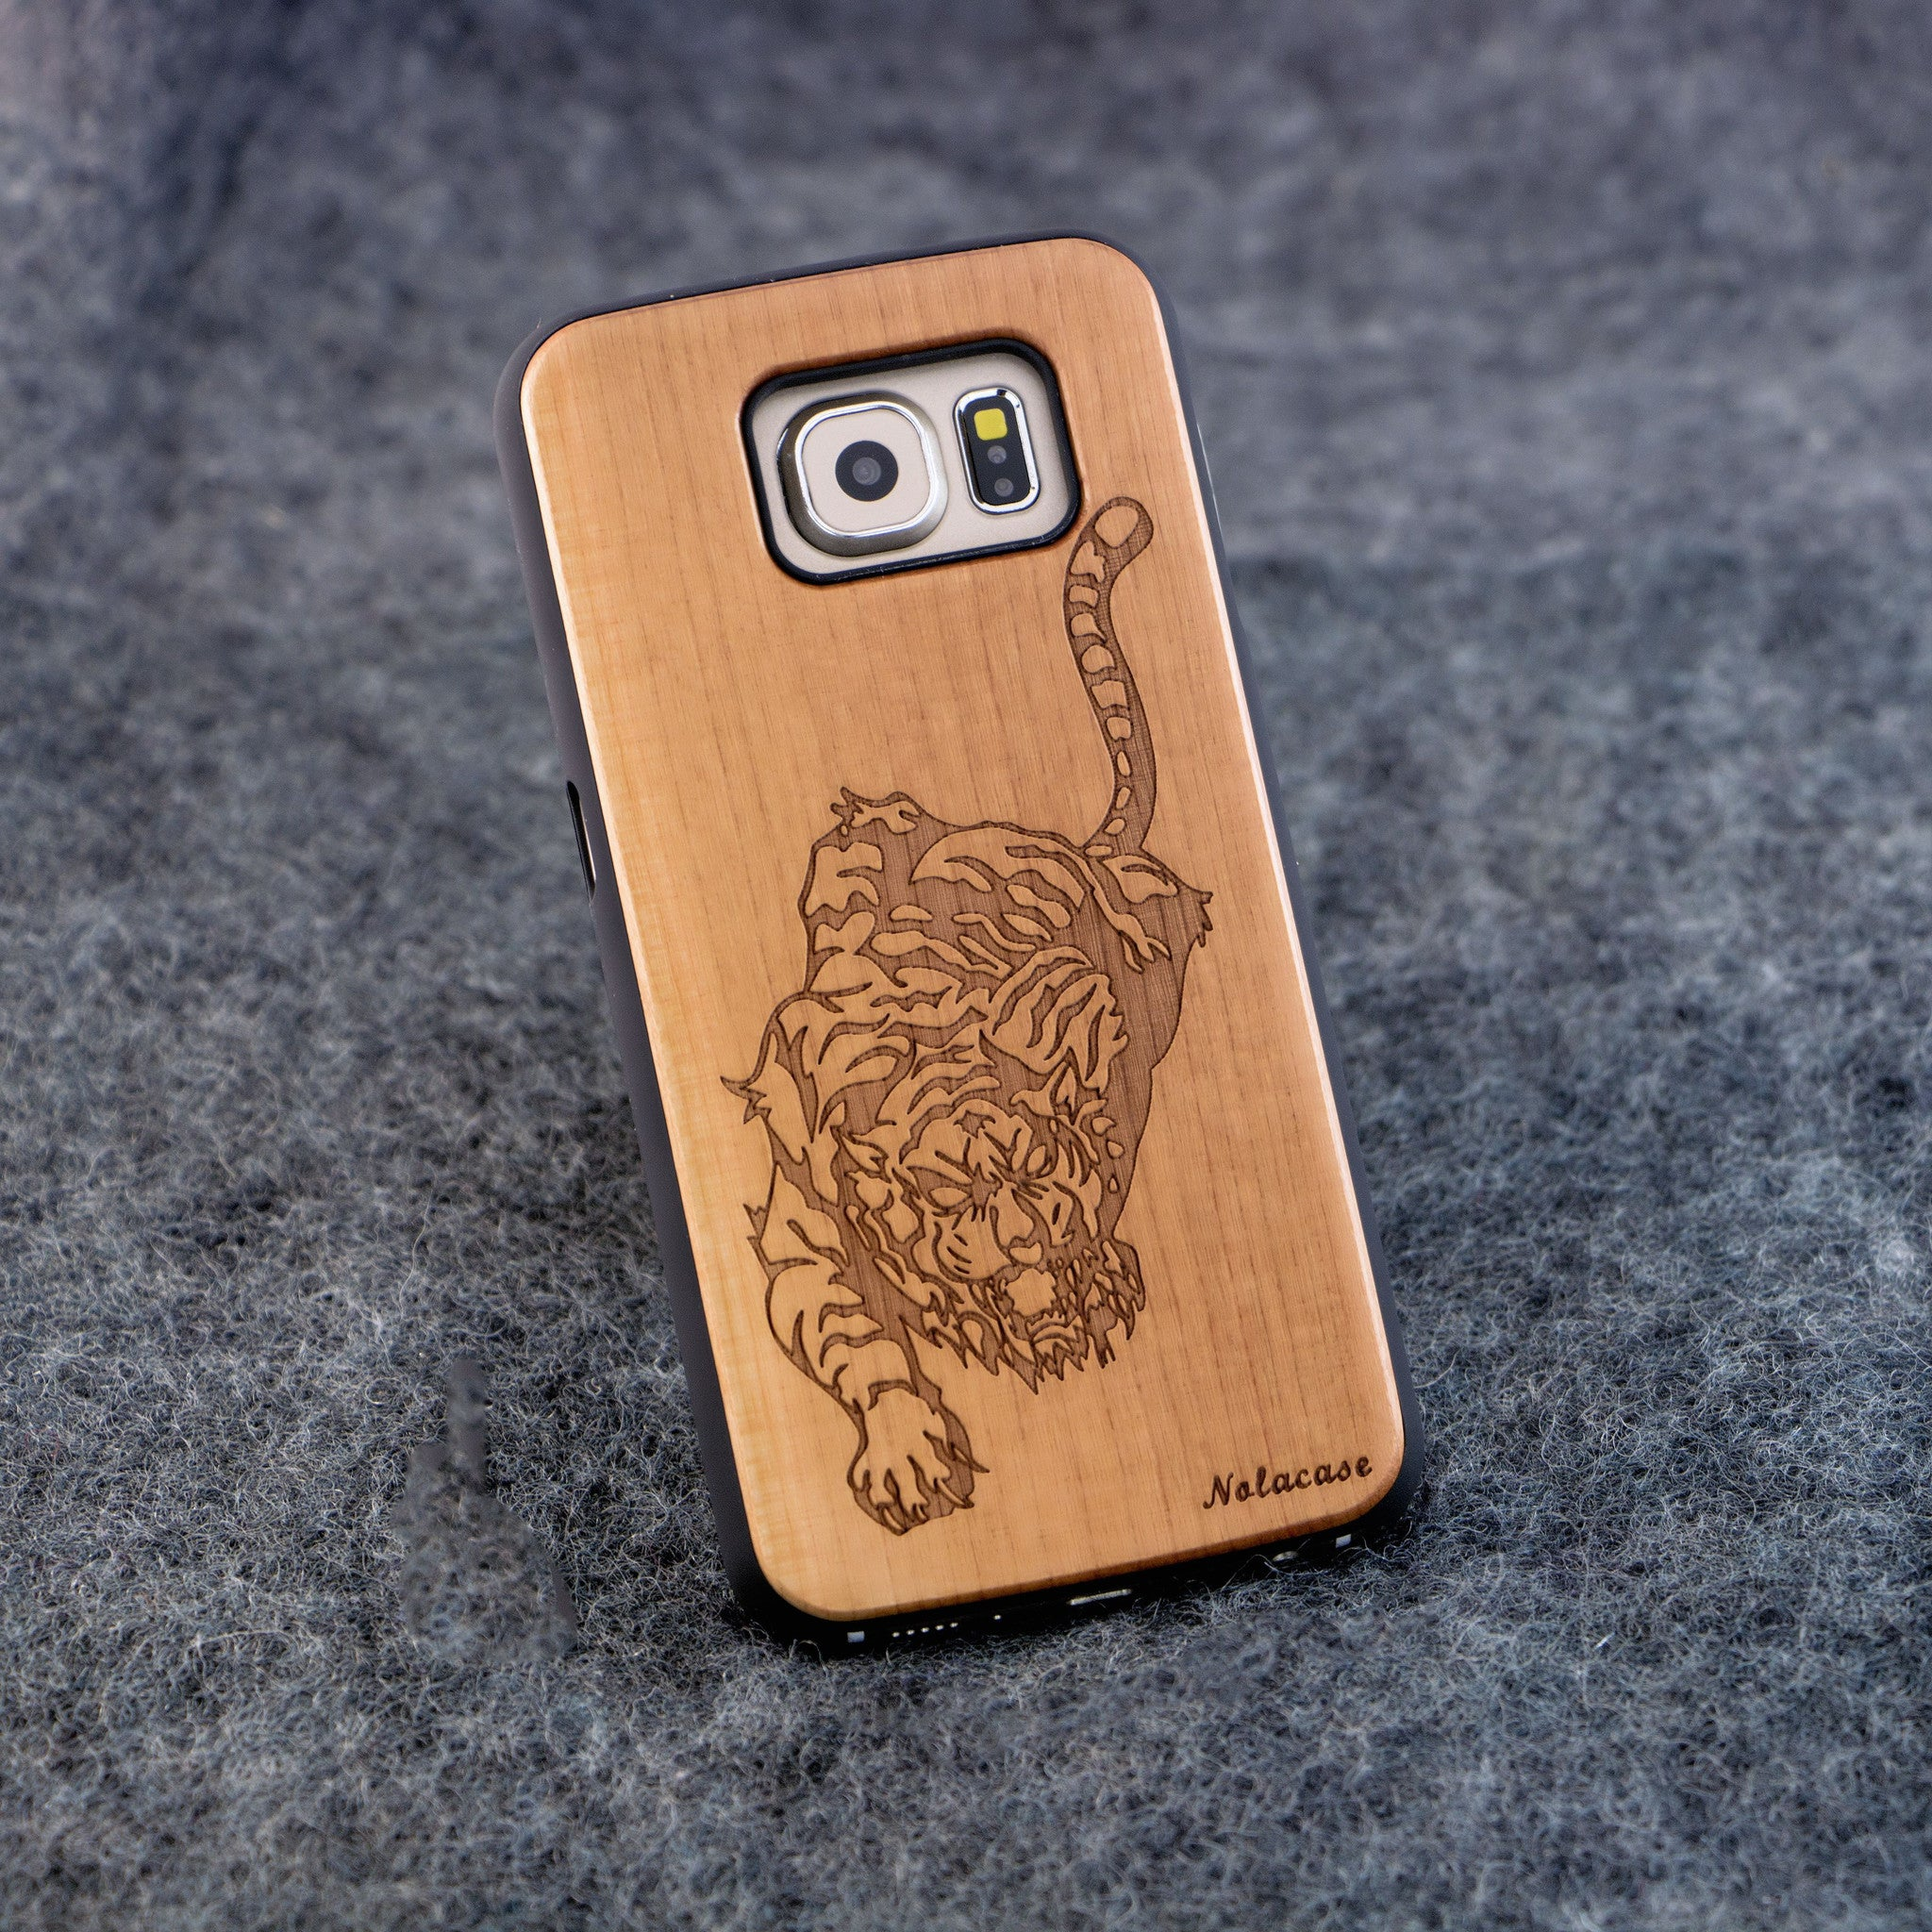 Samsung S6 Tiger Slim Wood Case - NOLACASE